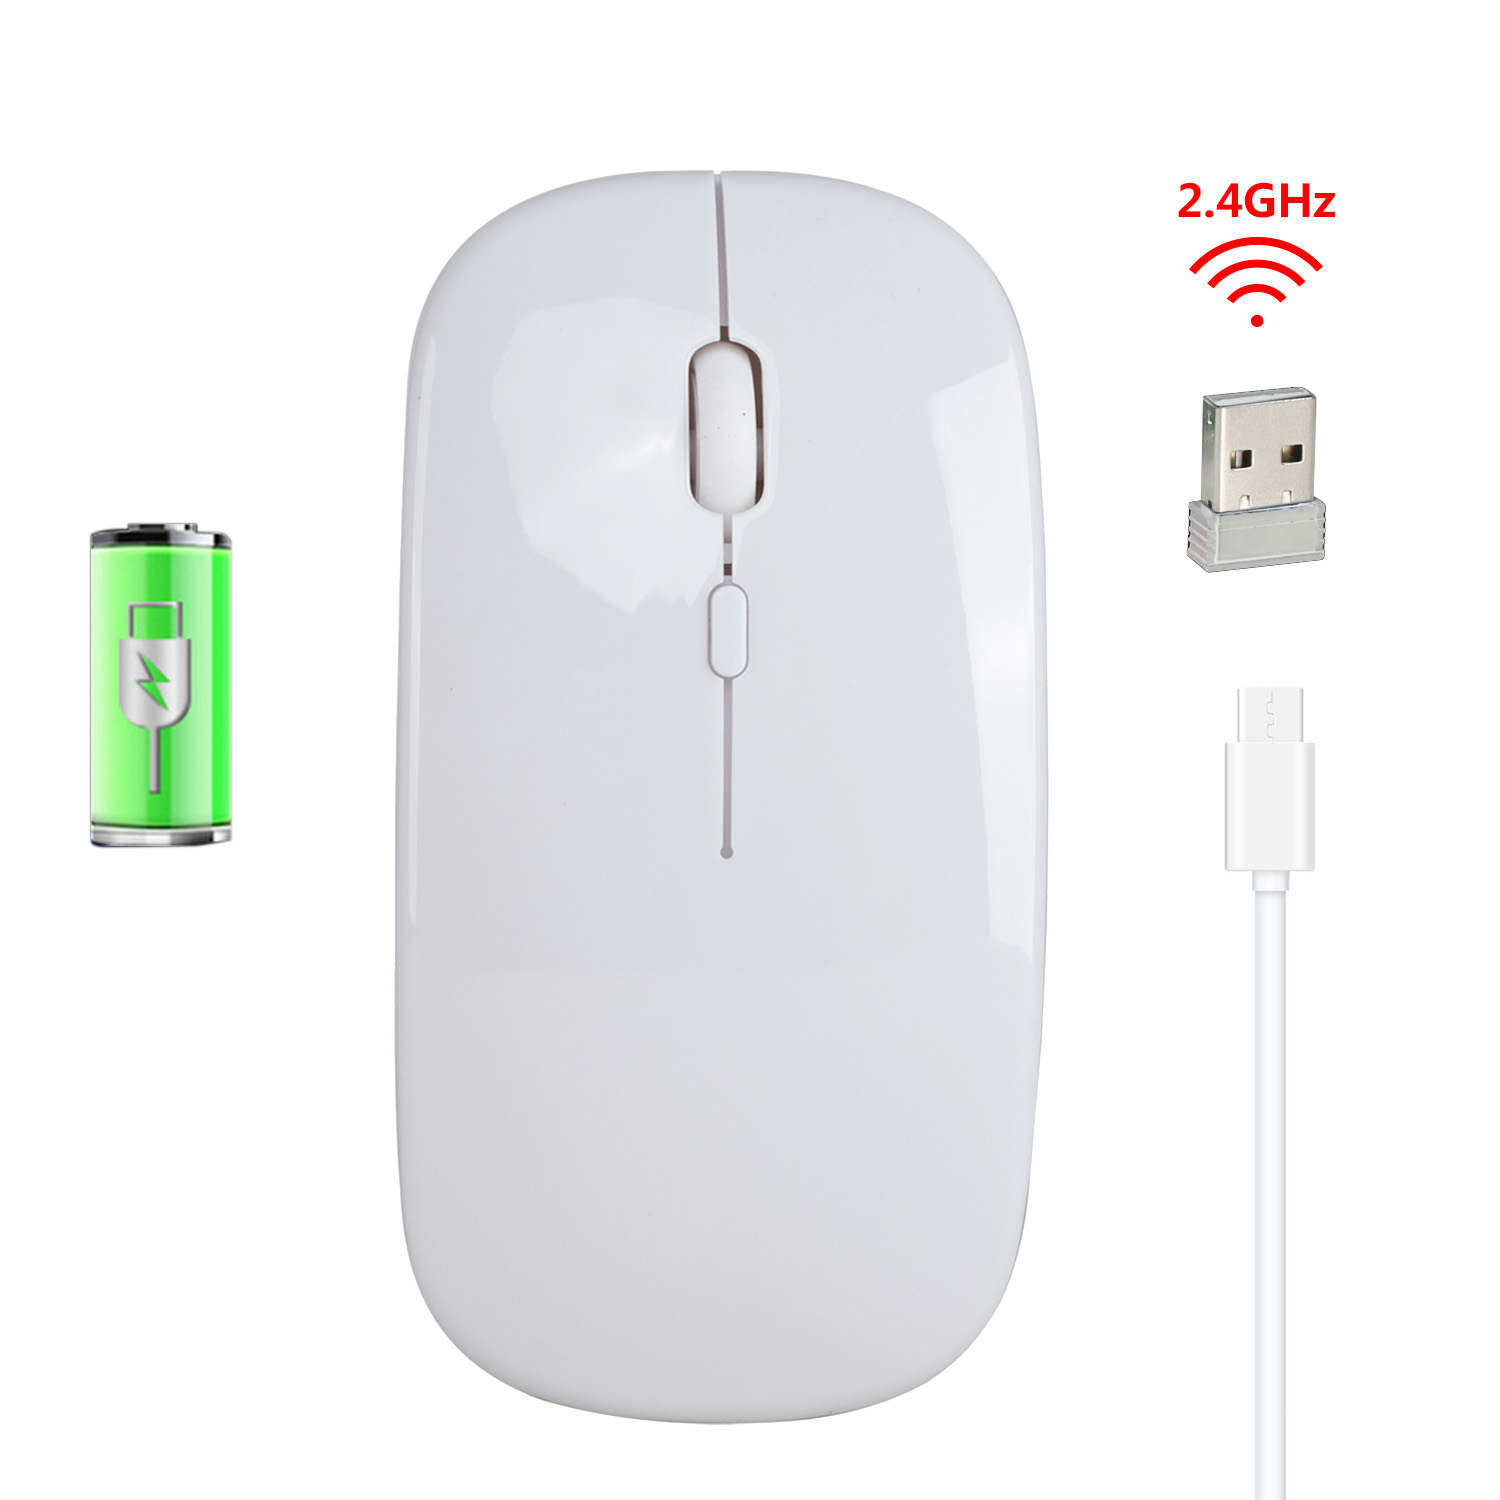 M80 2.4G Wireless Rechargeable Charging Mouse Ultra-Thin Silent Office Notebook Opto-electronic Mouse white